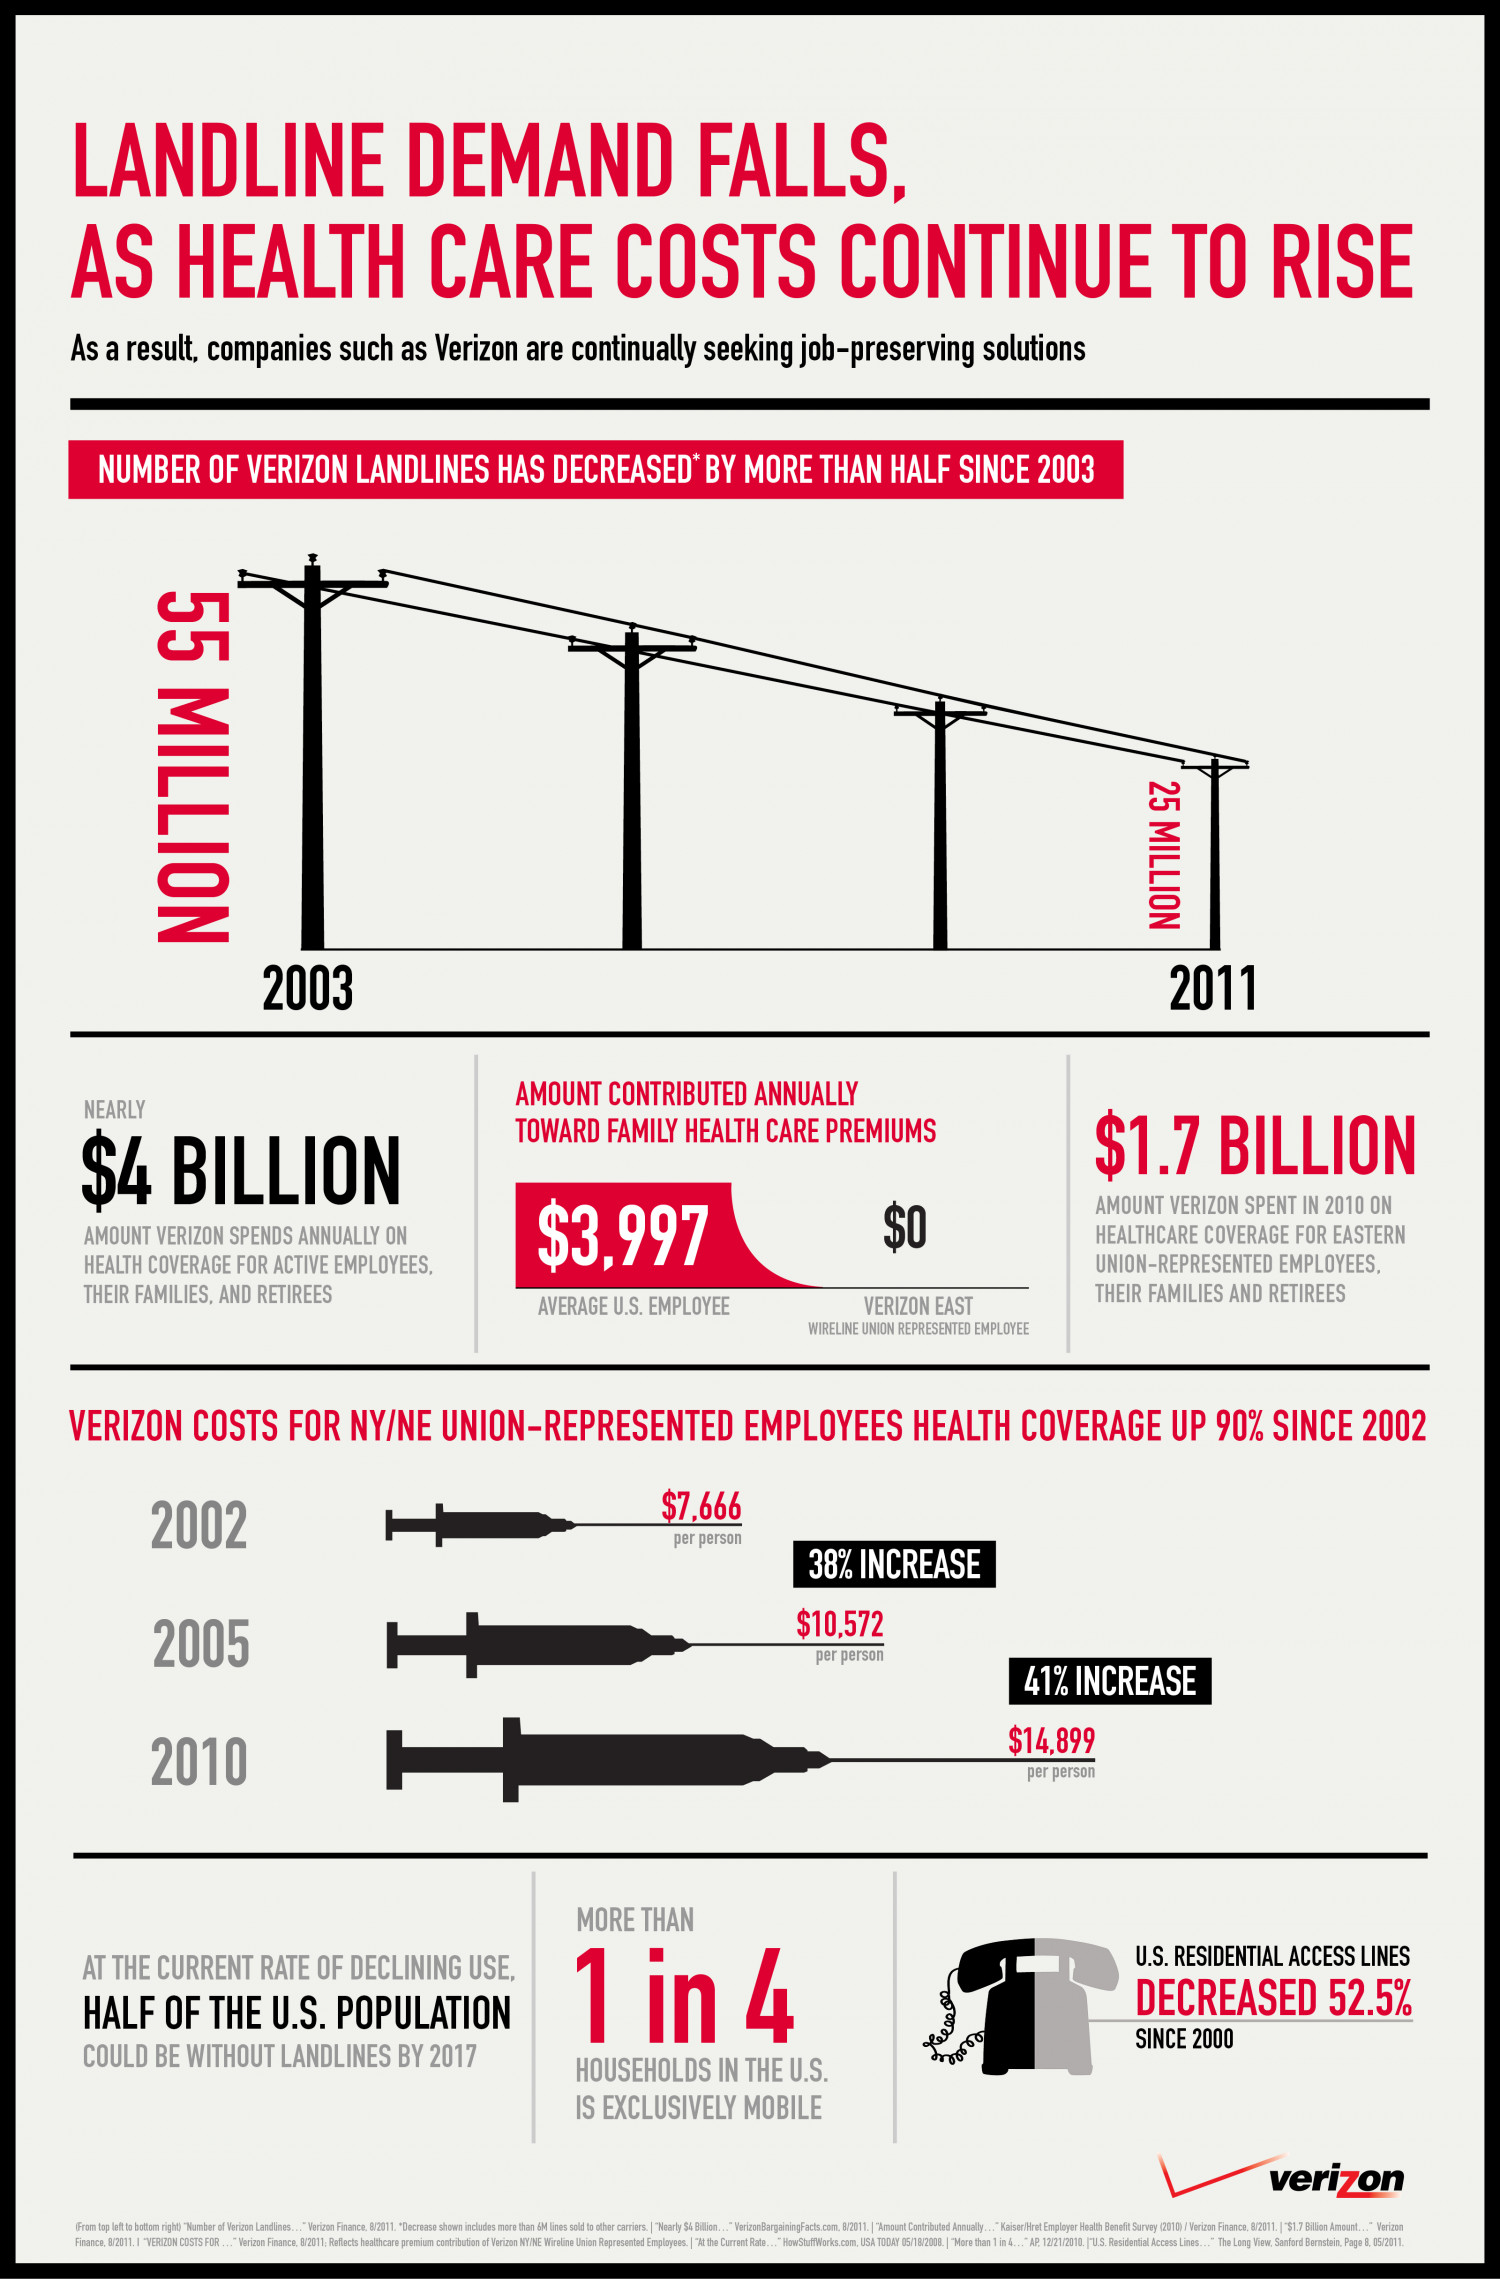 Landline Demand Falls, As Health Care Cost Continue To Rise Infographic